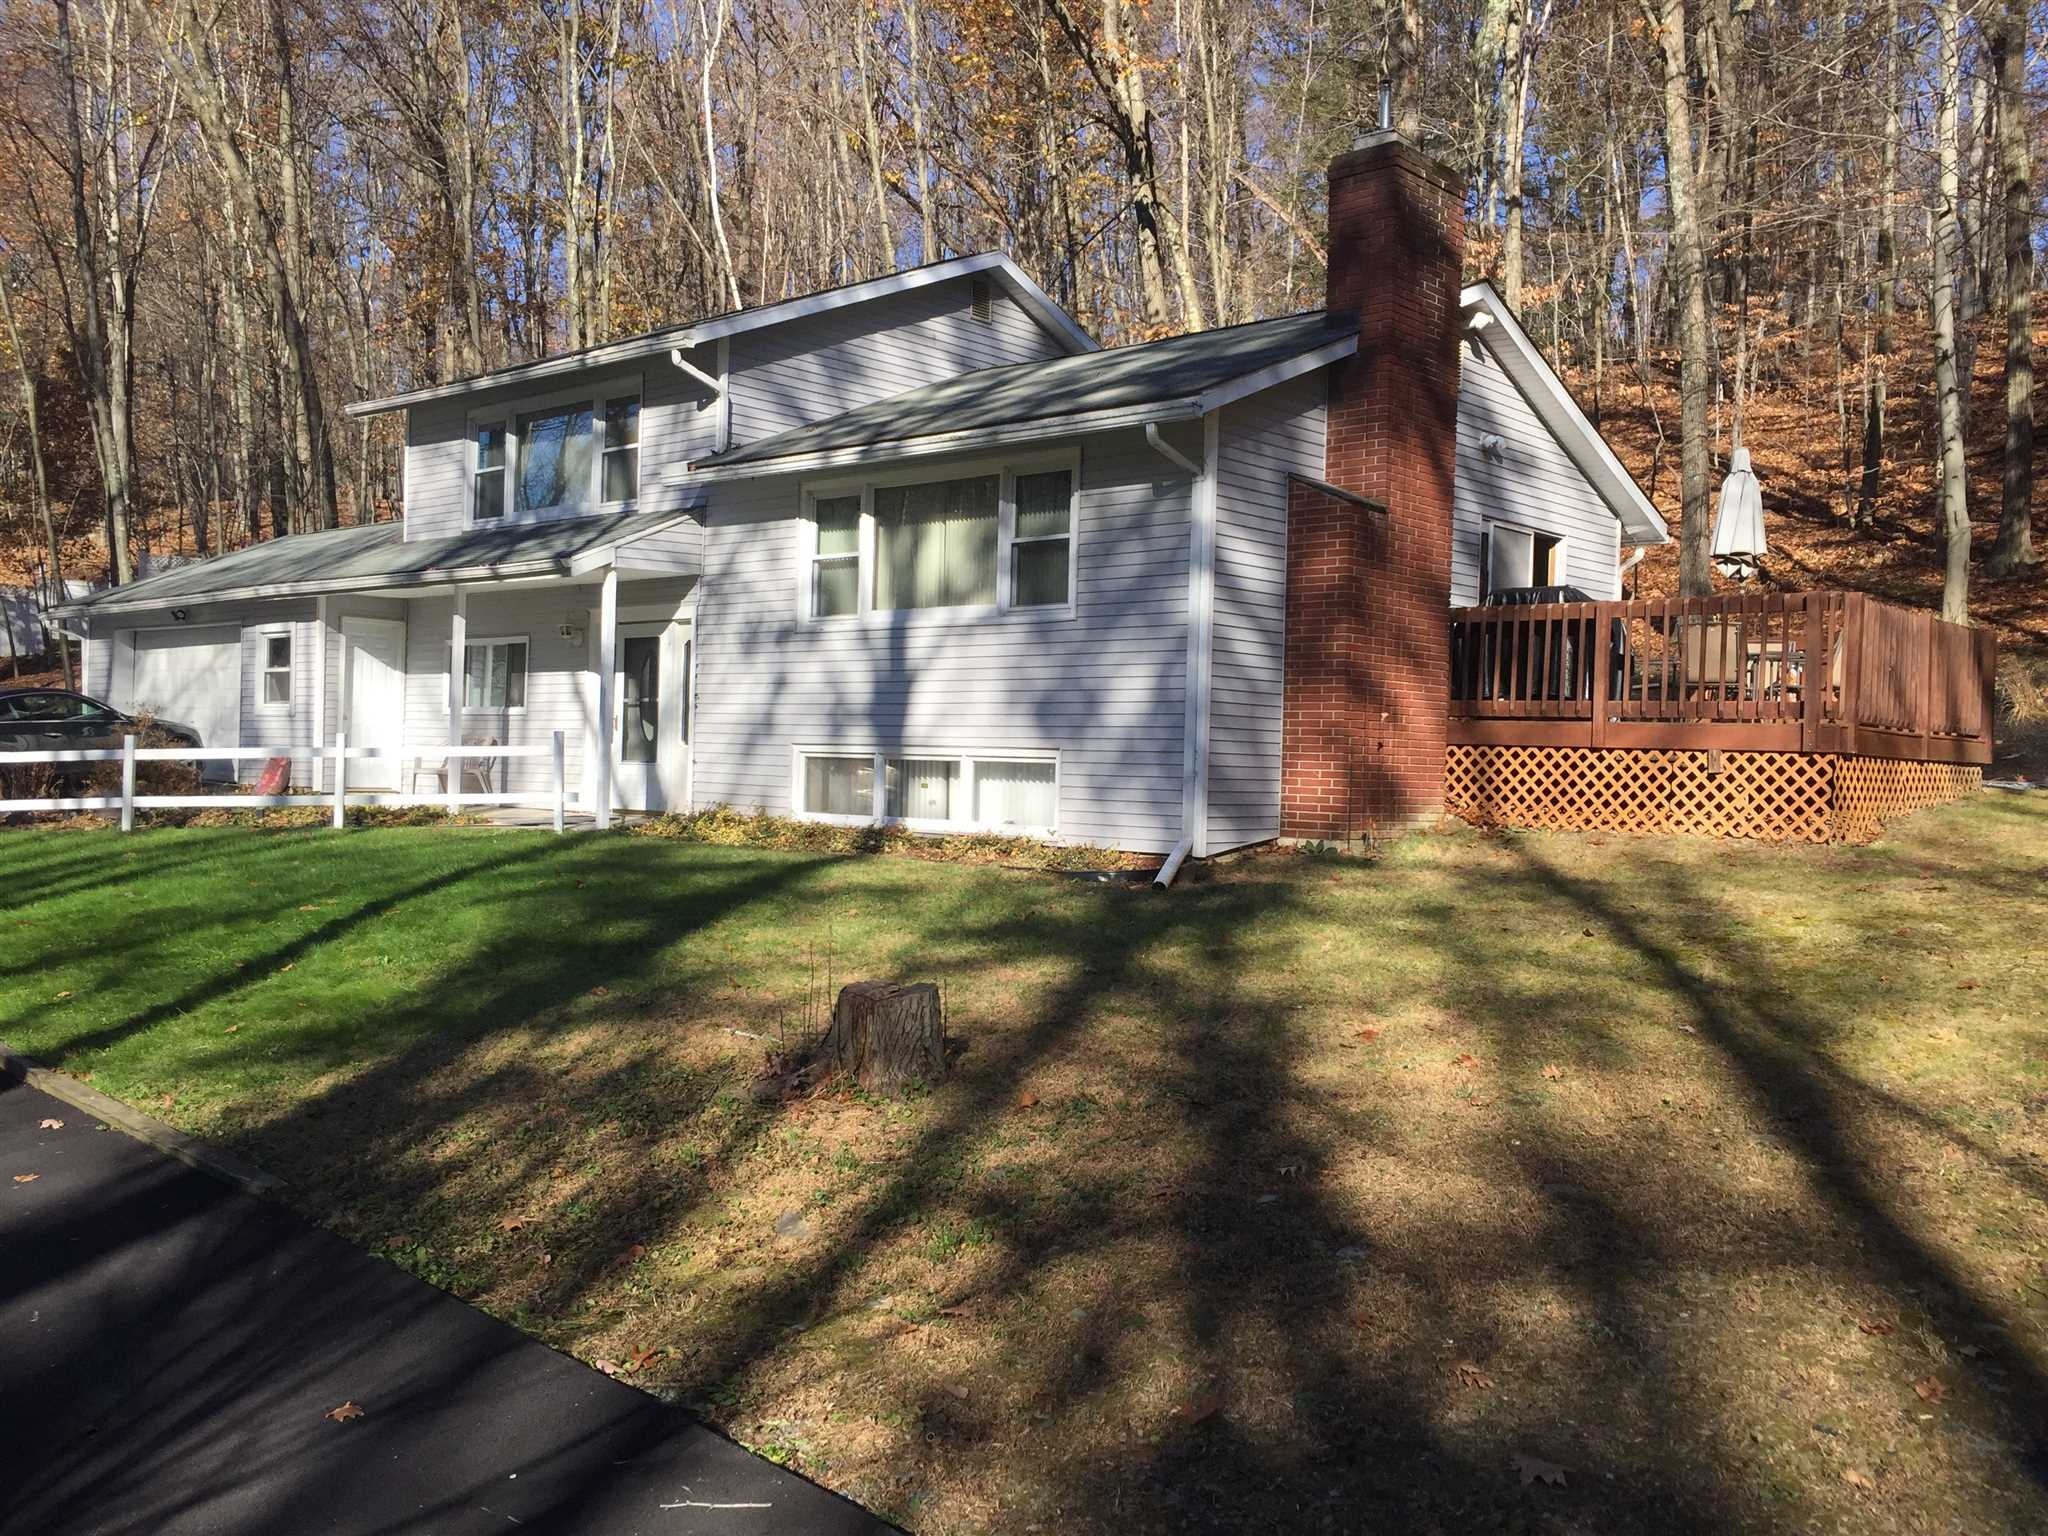 Single Family Home for Sale at 100 OLD SYLVAN LAKE Road 100 OLD SYLVAN LAKE Road East Fishkill, New York 12533 United States